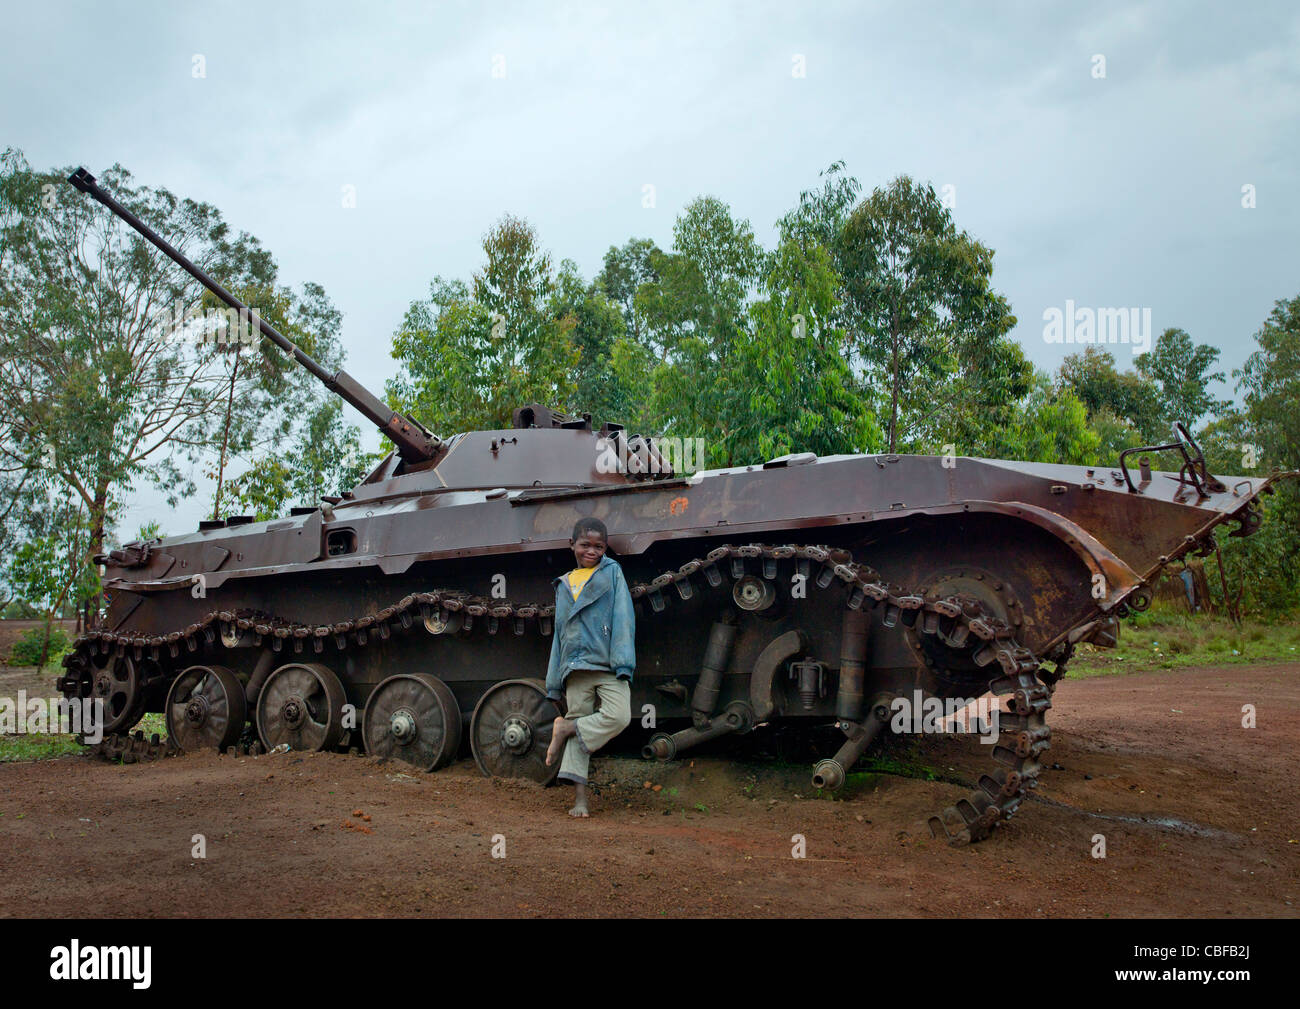 Boy In Front Of A Tank Wreck From Civil War, Bie Area, Angola - Stock Image